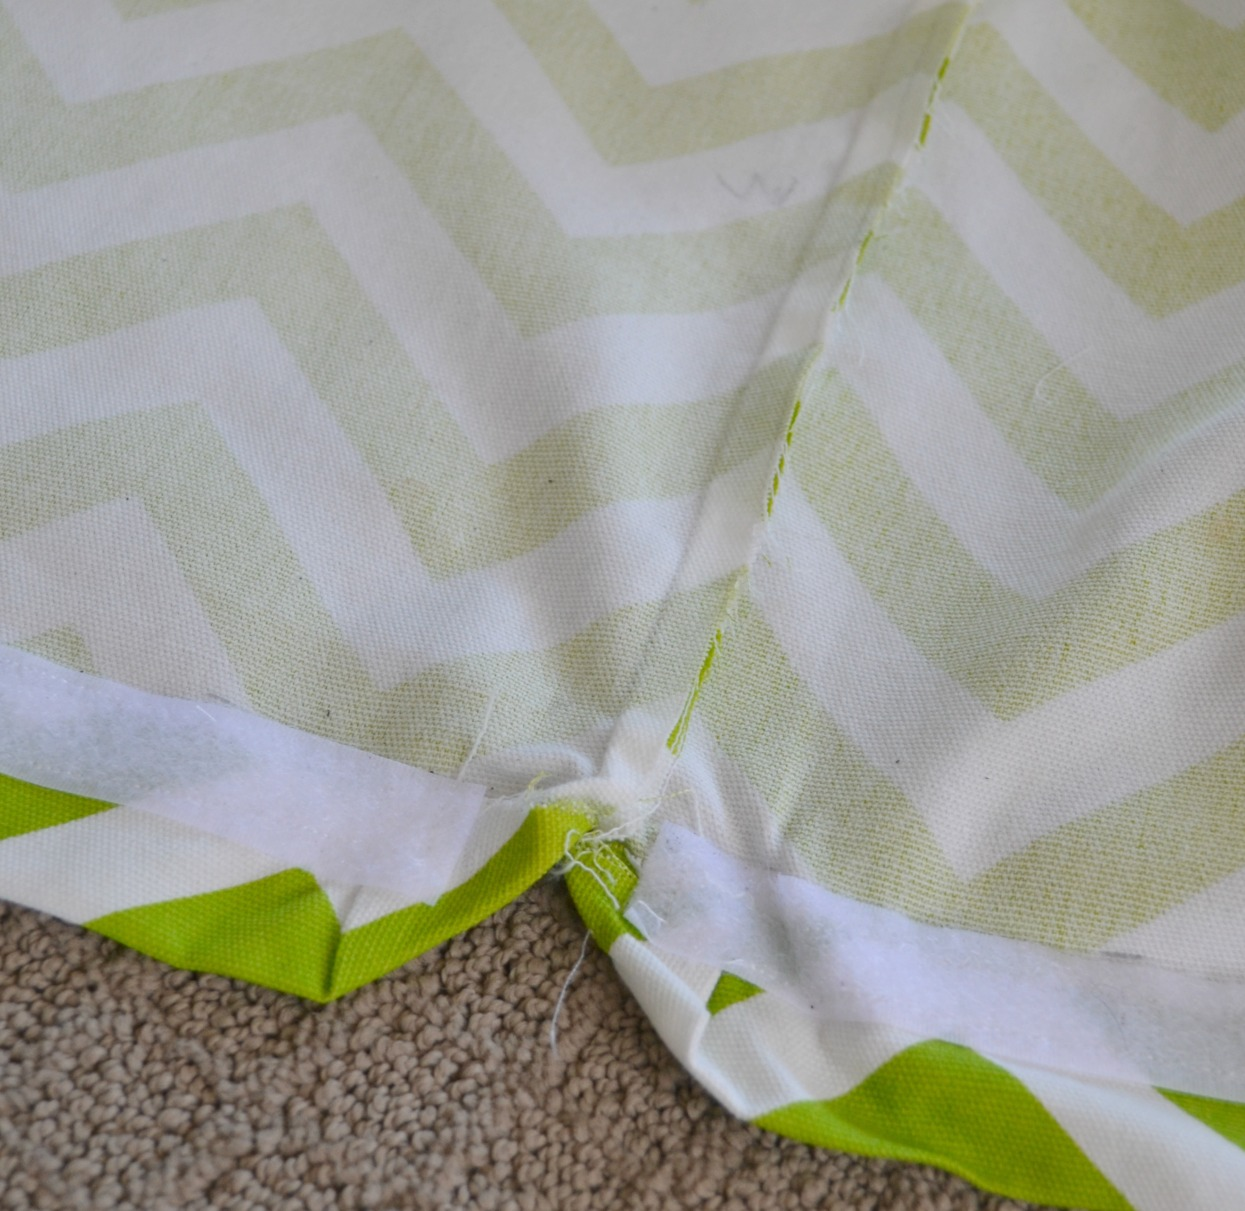 DIY Ottoman Slip Cover that can easily be removed and washed. How kid friendly is that? Click through for the full tutorial.